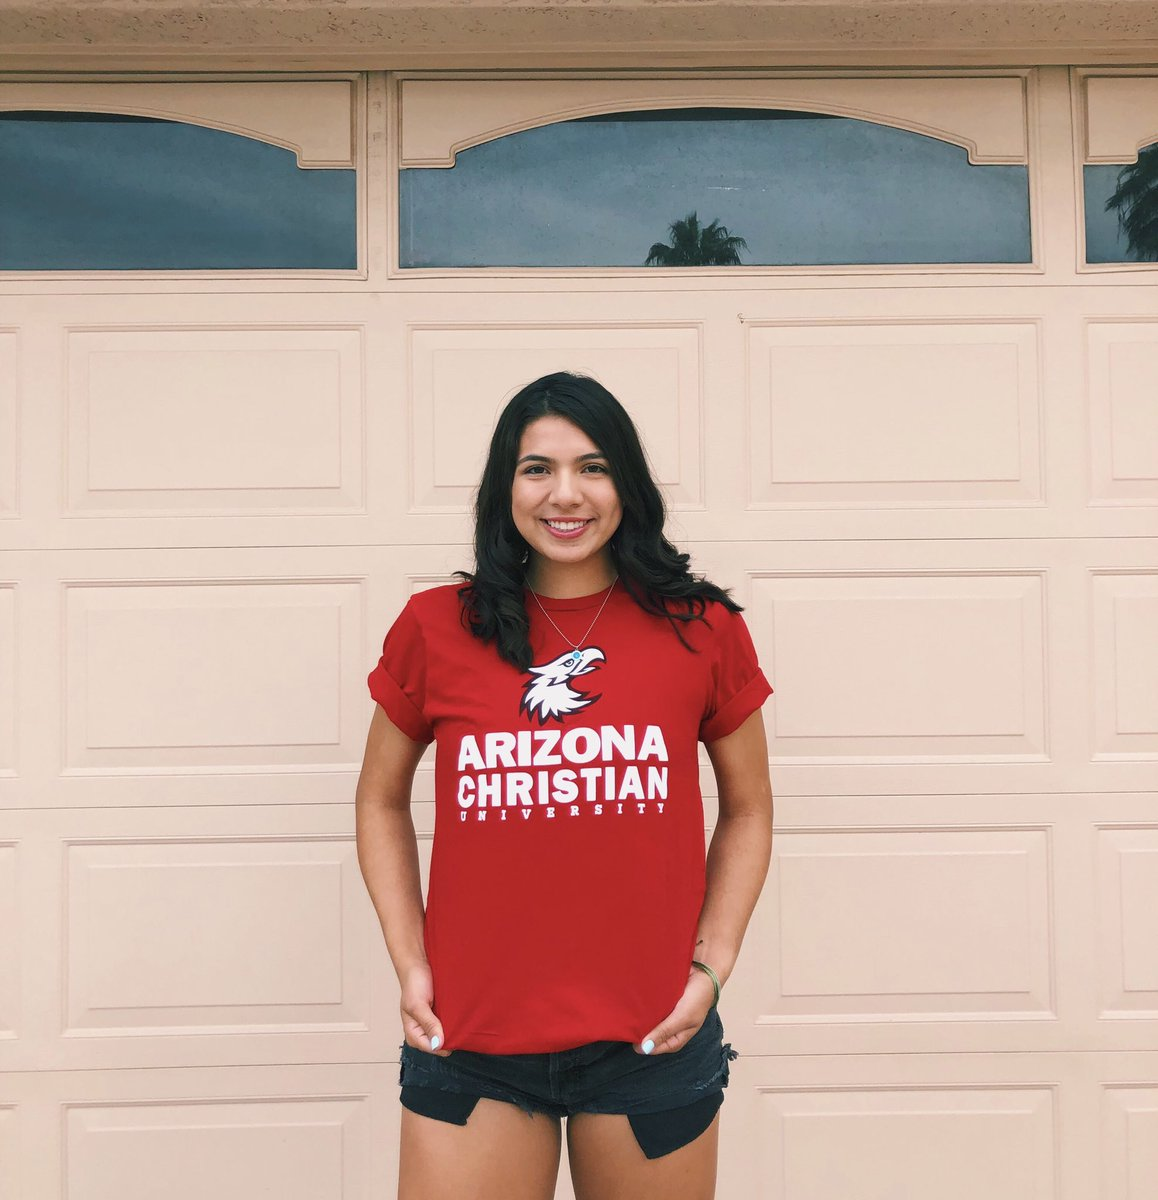 Excited to announce my commitment to continue my academic and basketball career at Arizona Christian University!🏀❤️💛 https://t.co/XO0fgXkKBU